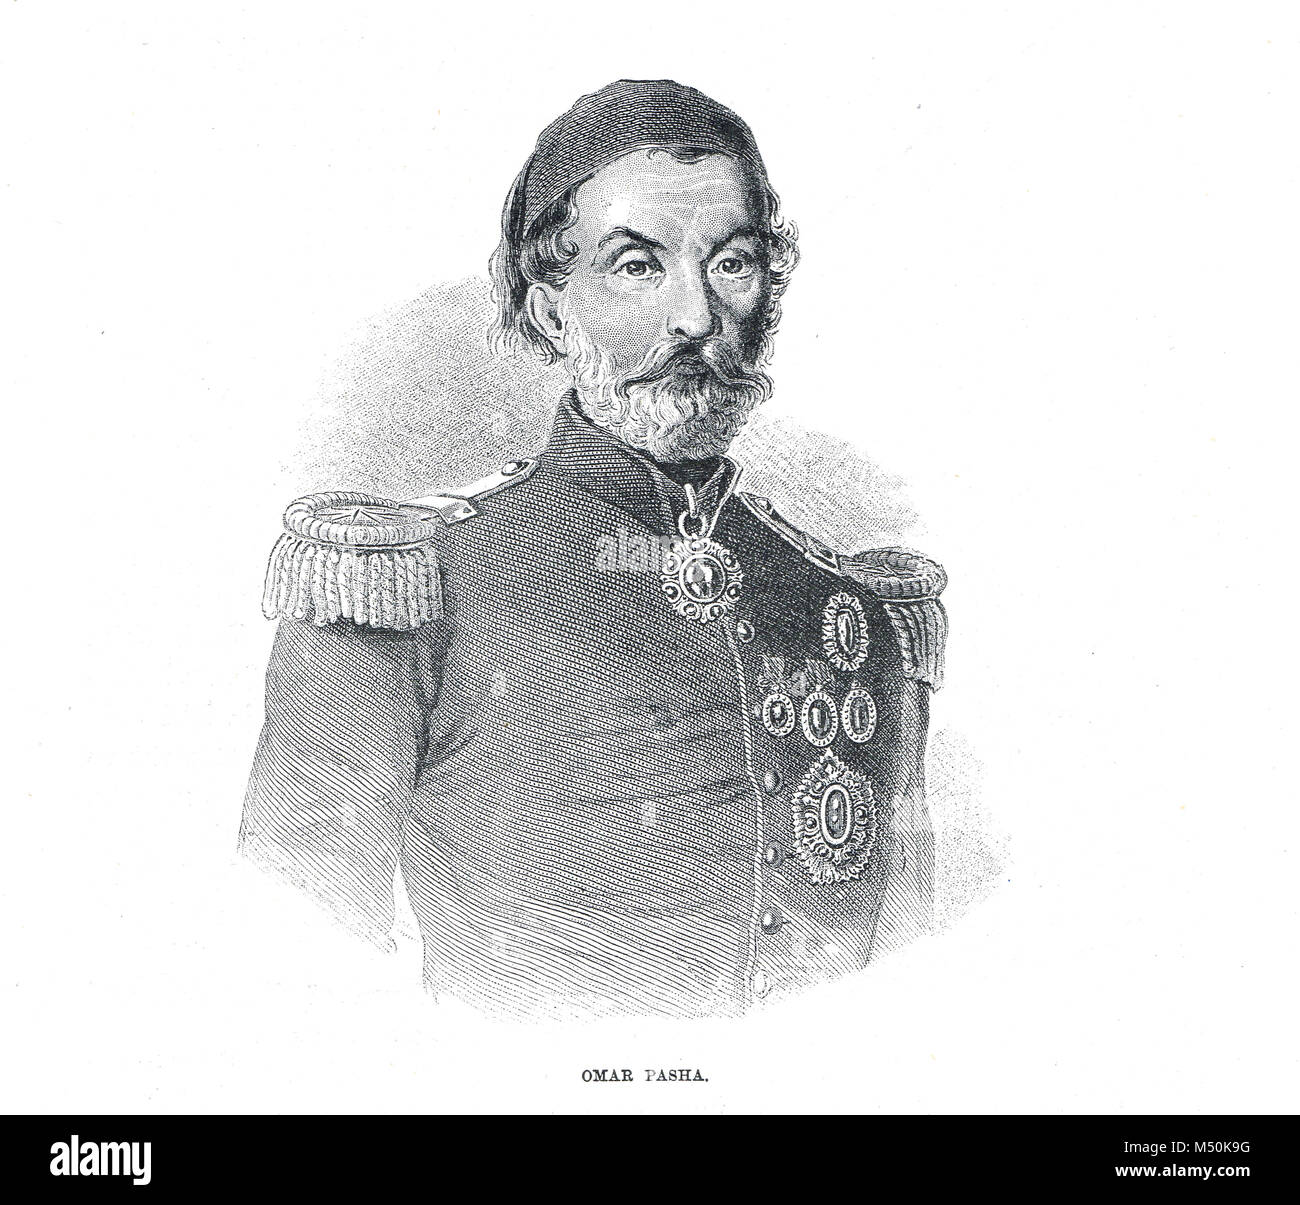 Omar Pasha, commander in the Crimean War, 1854, Ottoman field marshal and governor who won outstanding victories - Stock Image